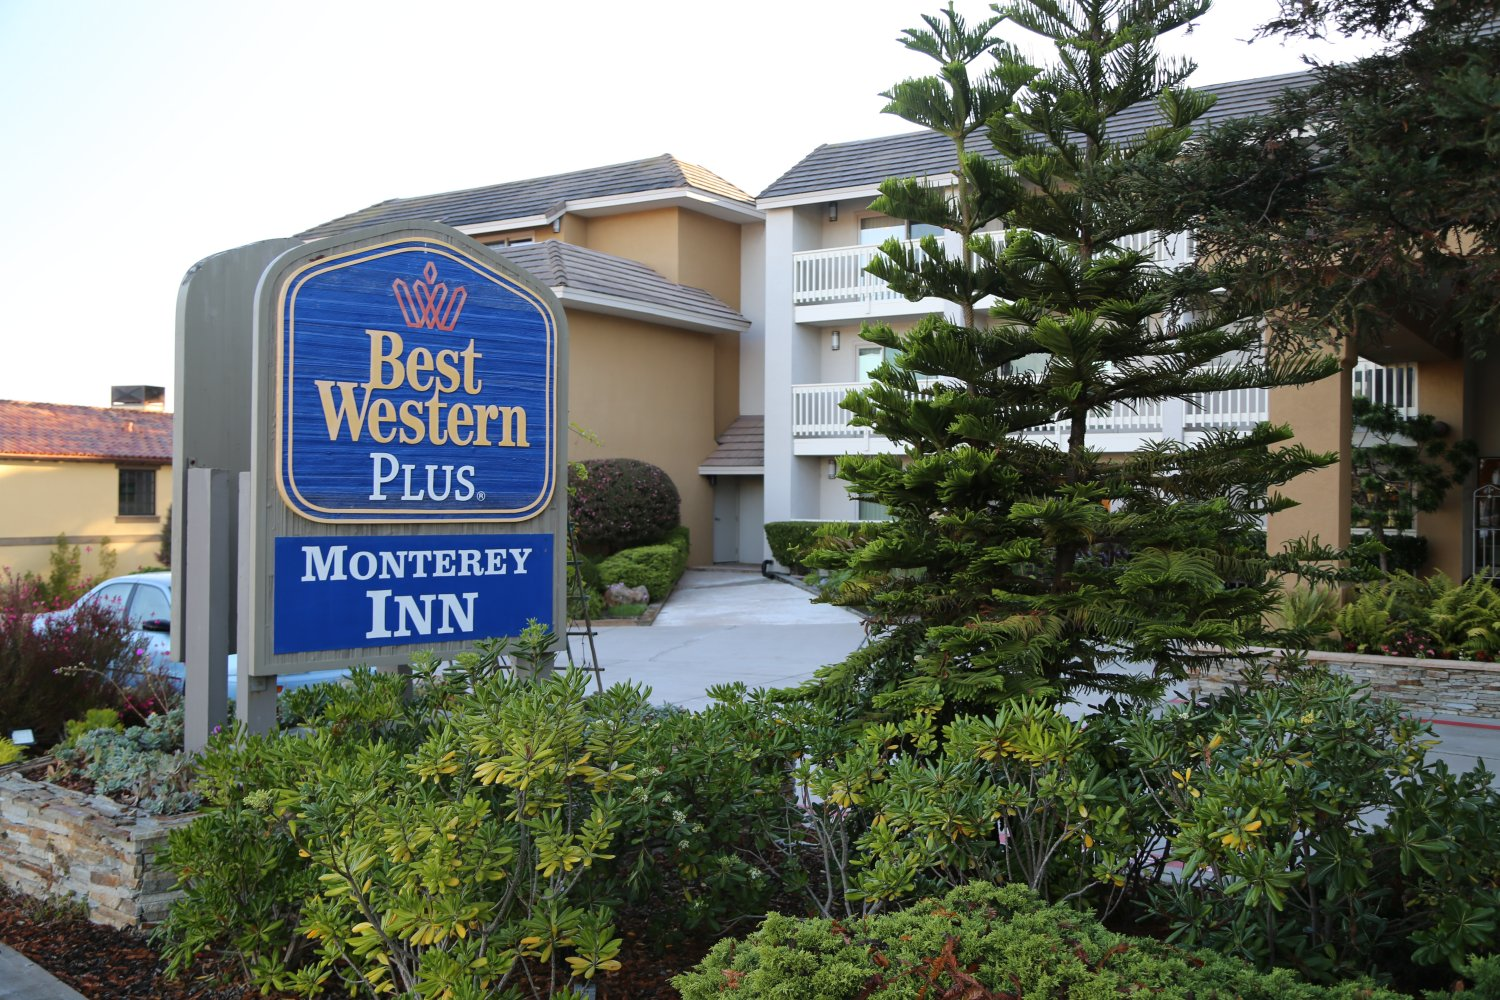 Best Western Monterey Inn Is Located At 825 Abrego Street Take The Munras Avenue Exit They Are Rated 3 Stars And Their Prices Range From 119 To 199